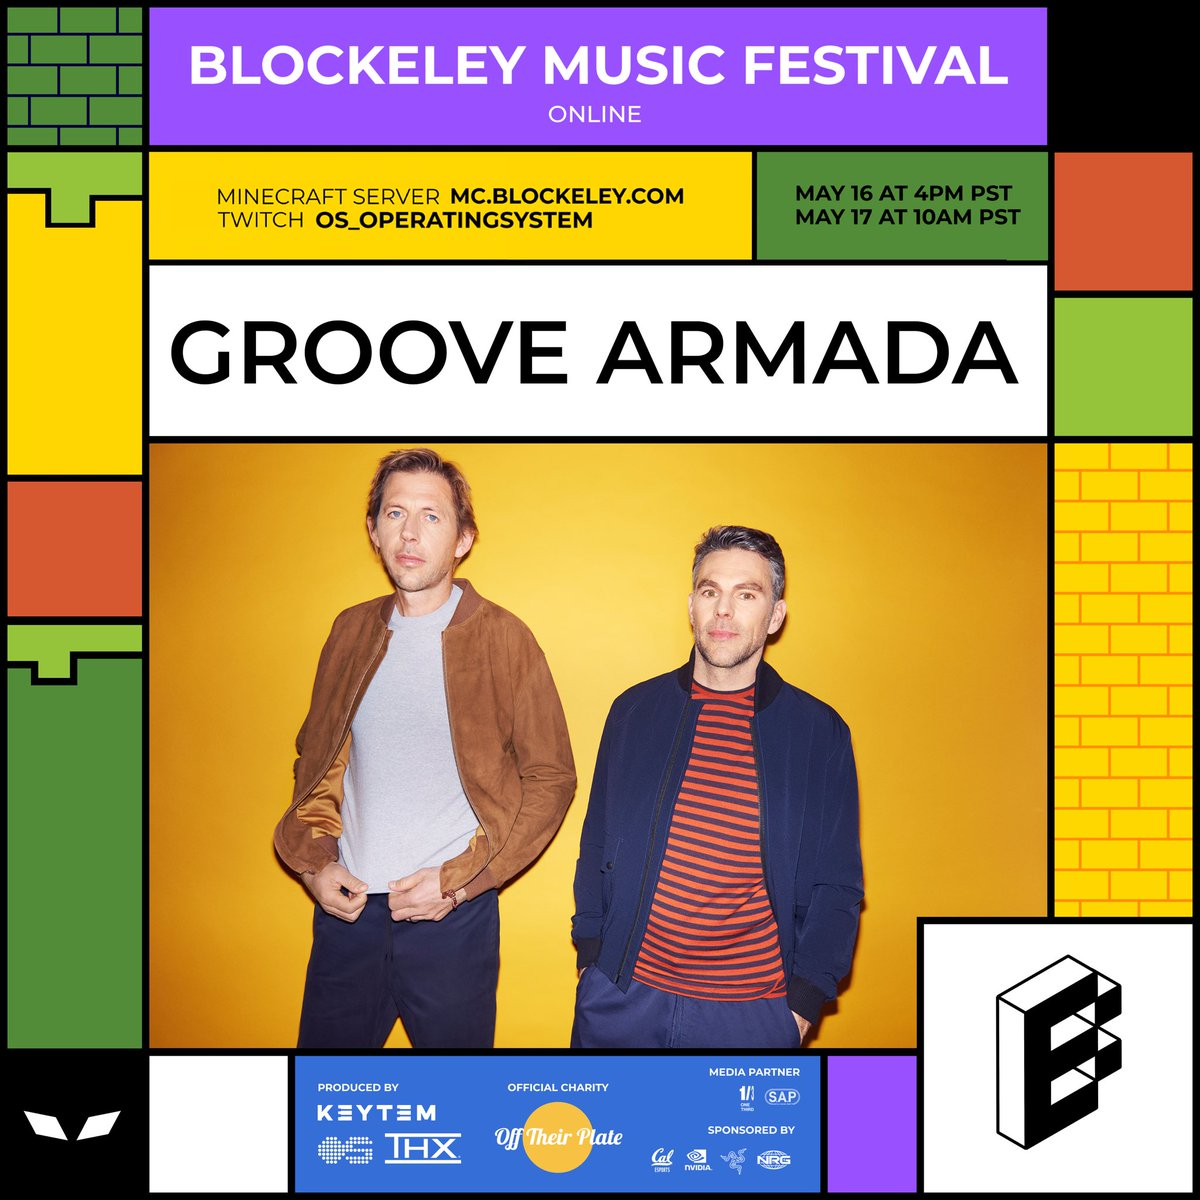 @GrooveArmada IN 10 MINUTES! DONT MISS OUT! Livestream link: twitch.tv/os_operatingsy…